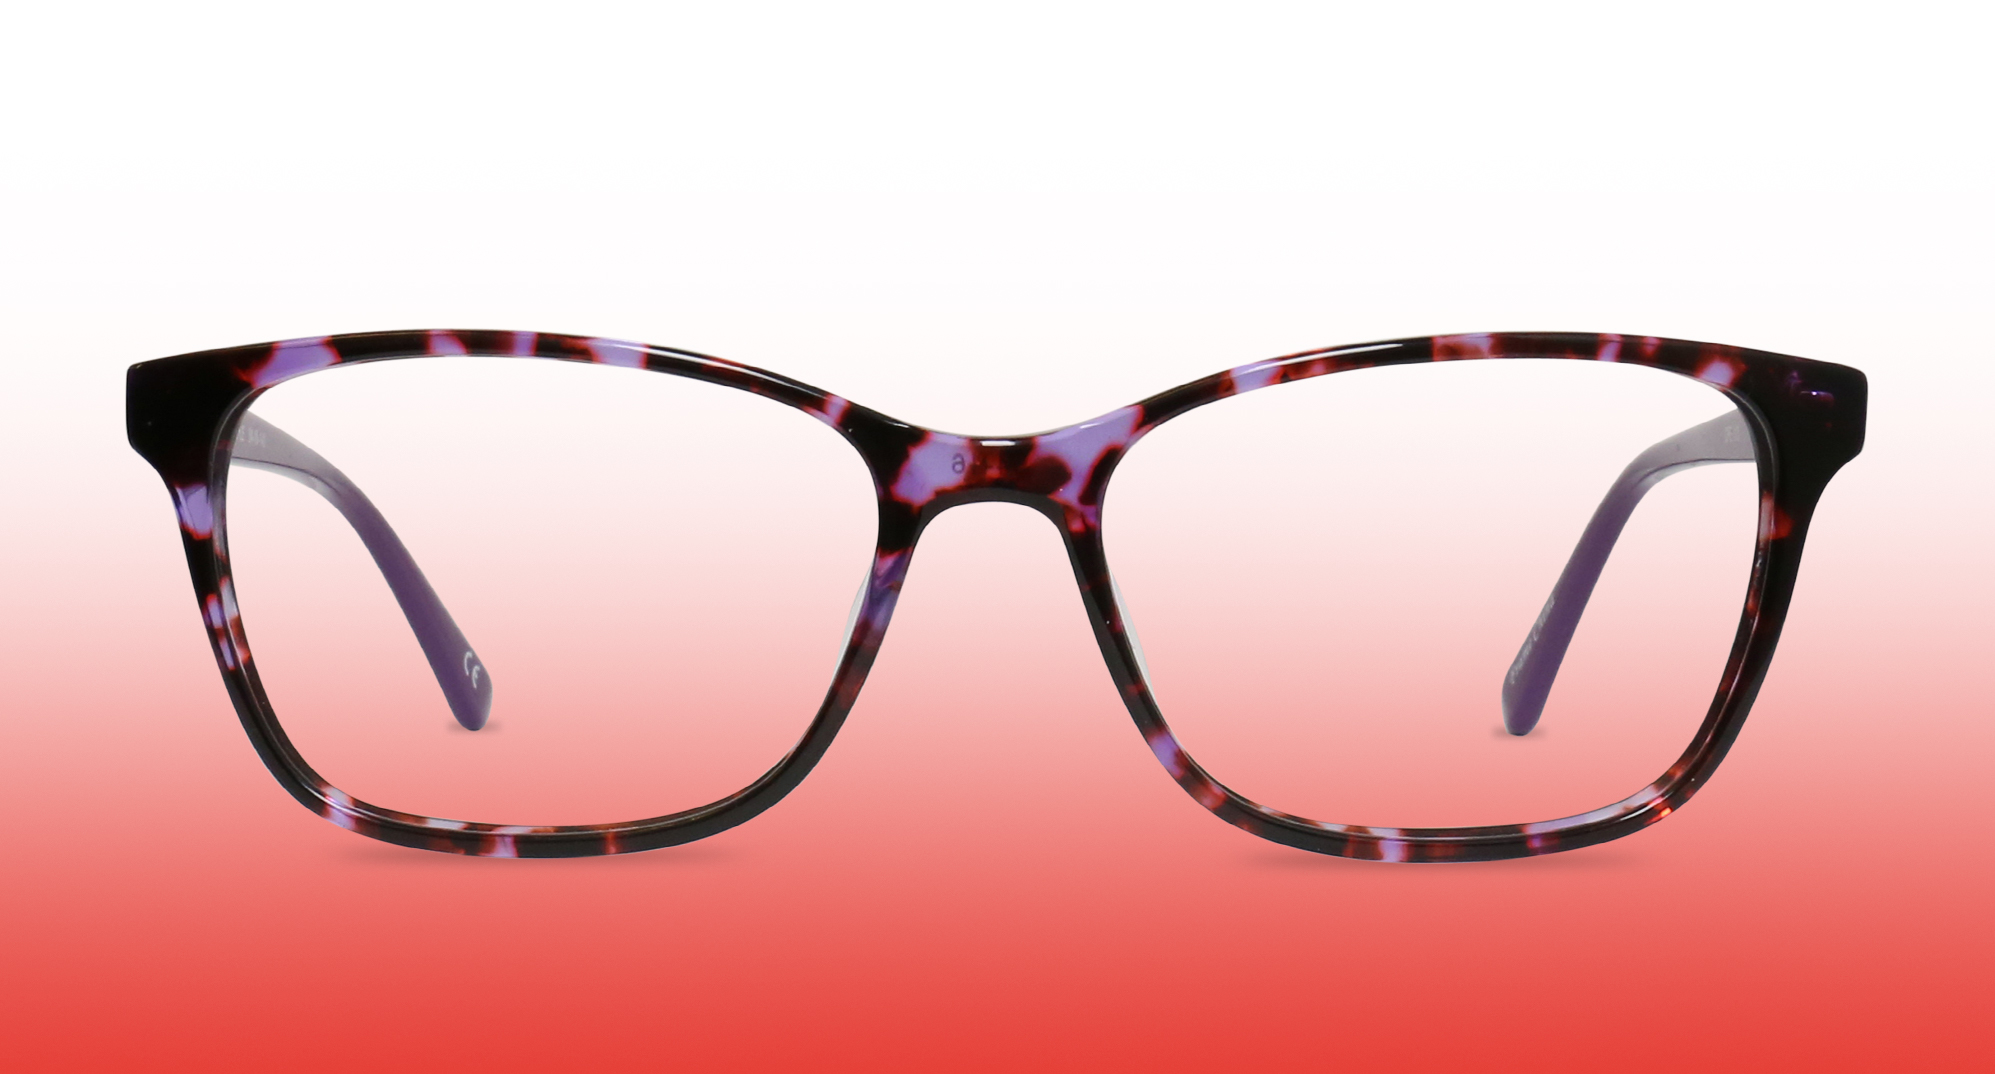 Pair of women's eyeglasses